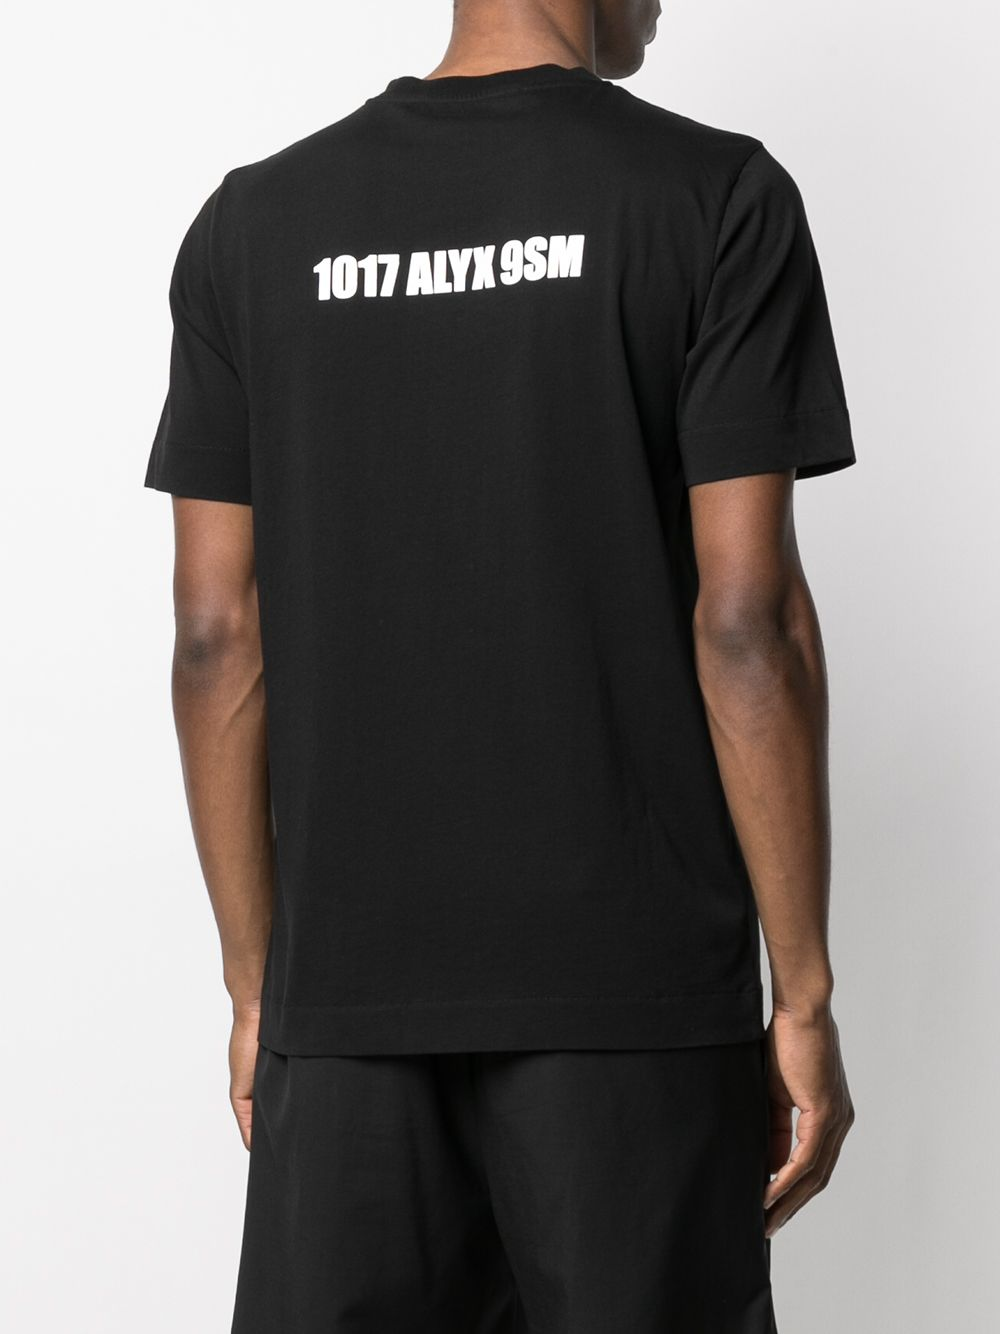 1017 Alyx 9sm mirrored logo t-shirt man black 1017 ALYX 9SM | T-shirts | AAMTS0204FA01BLK00001